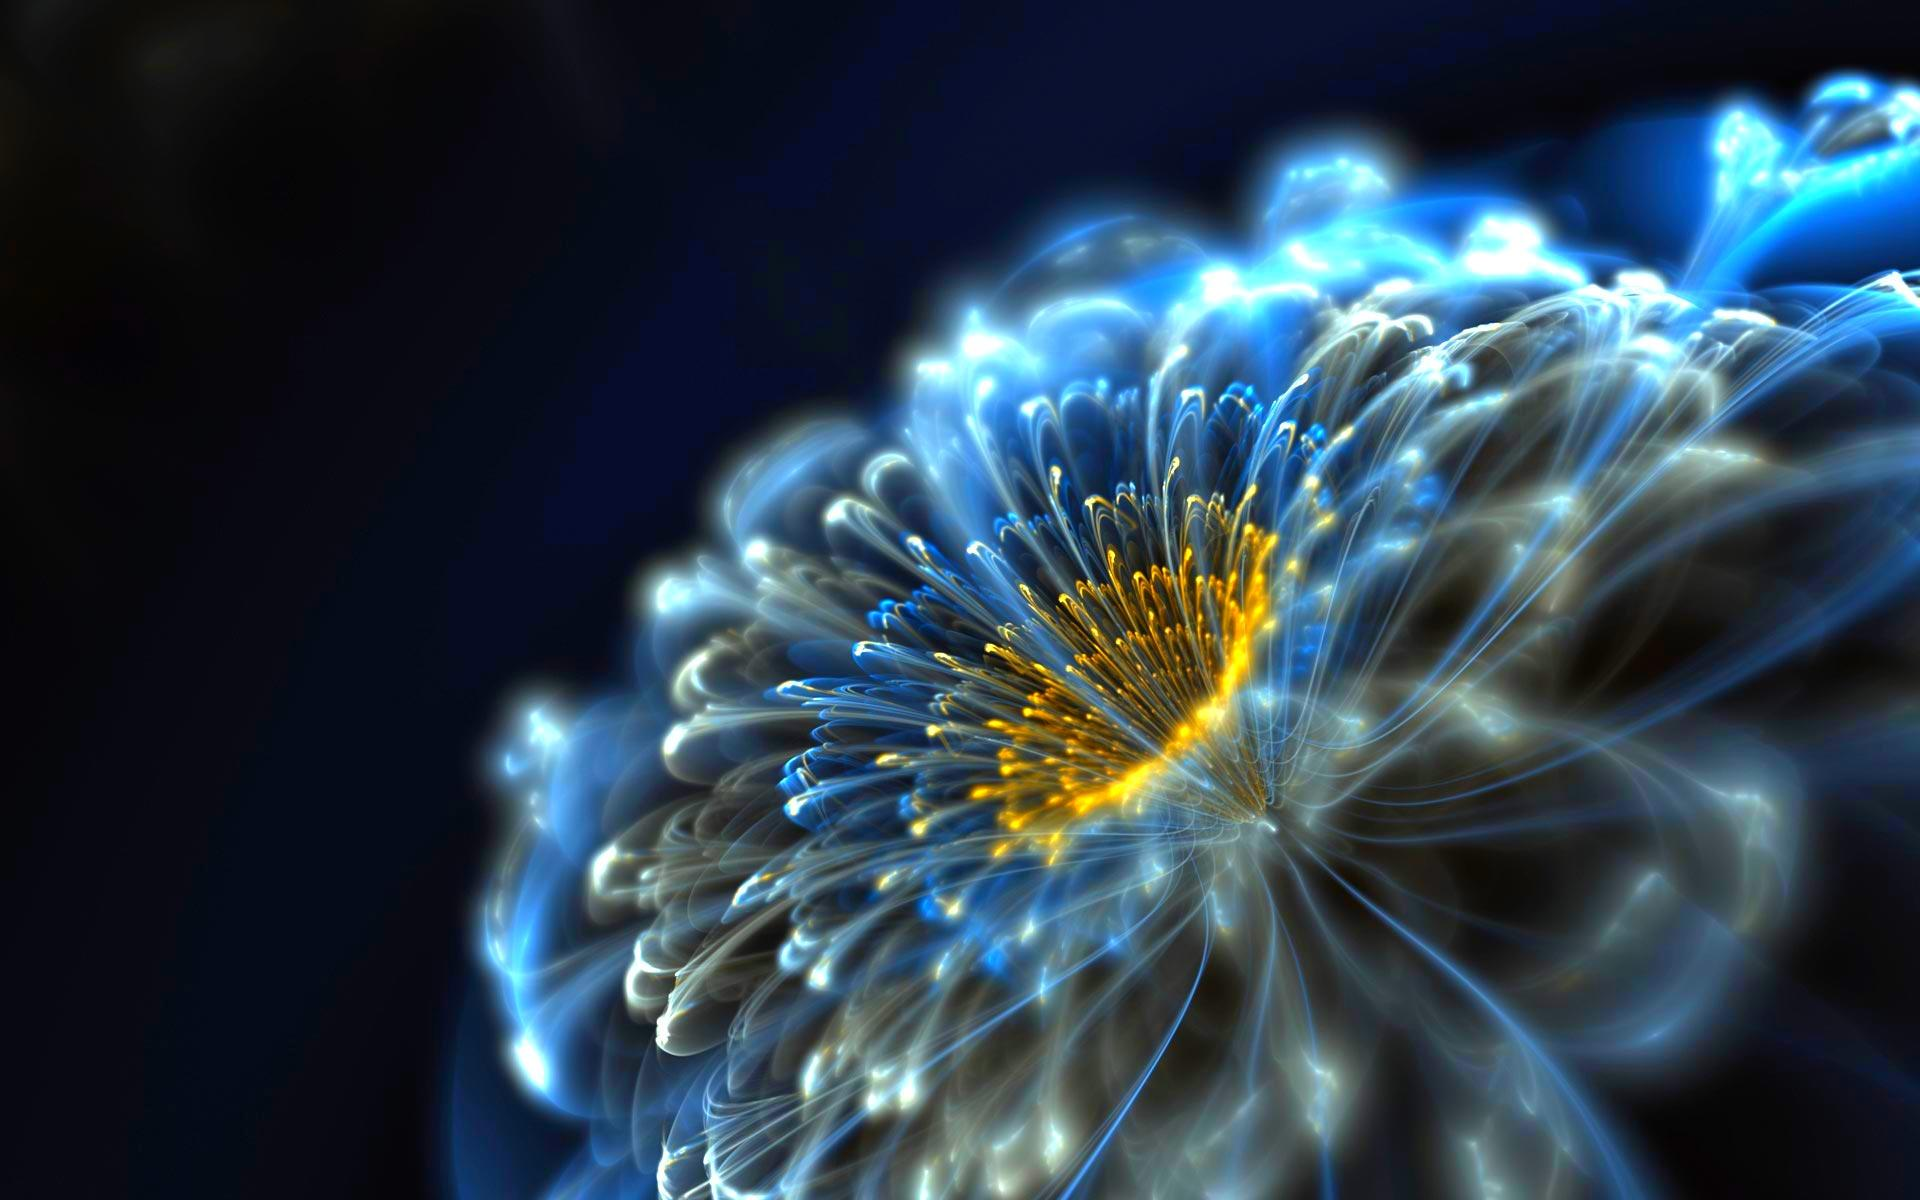 Electrical Engineering - Hd Neon Flowers , HD Wallpaper & Backgrounds